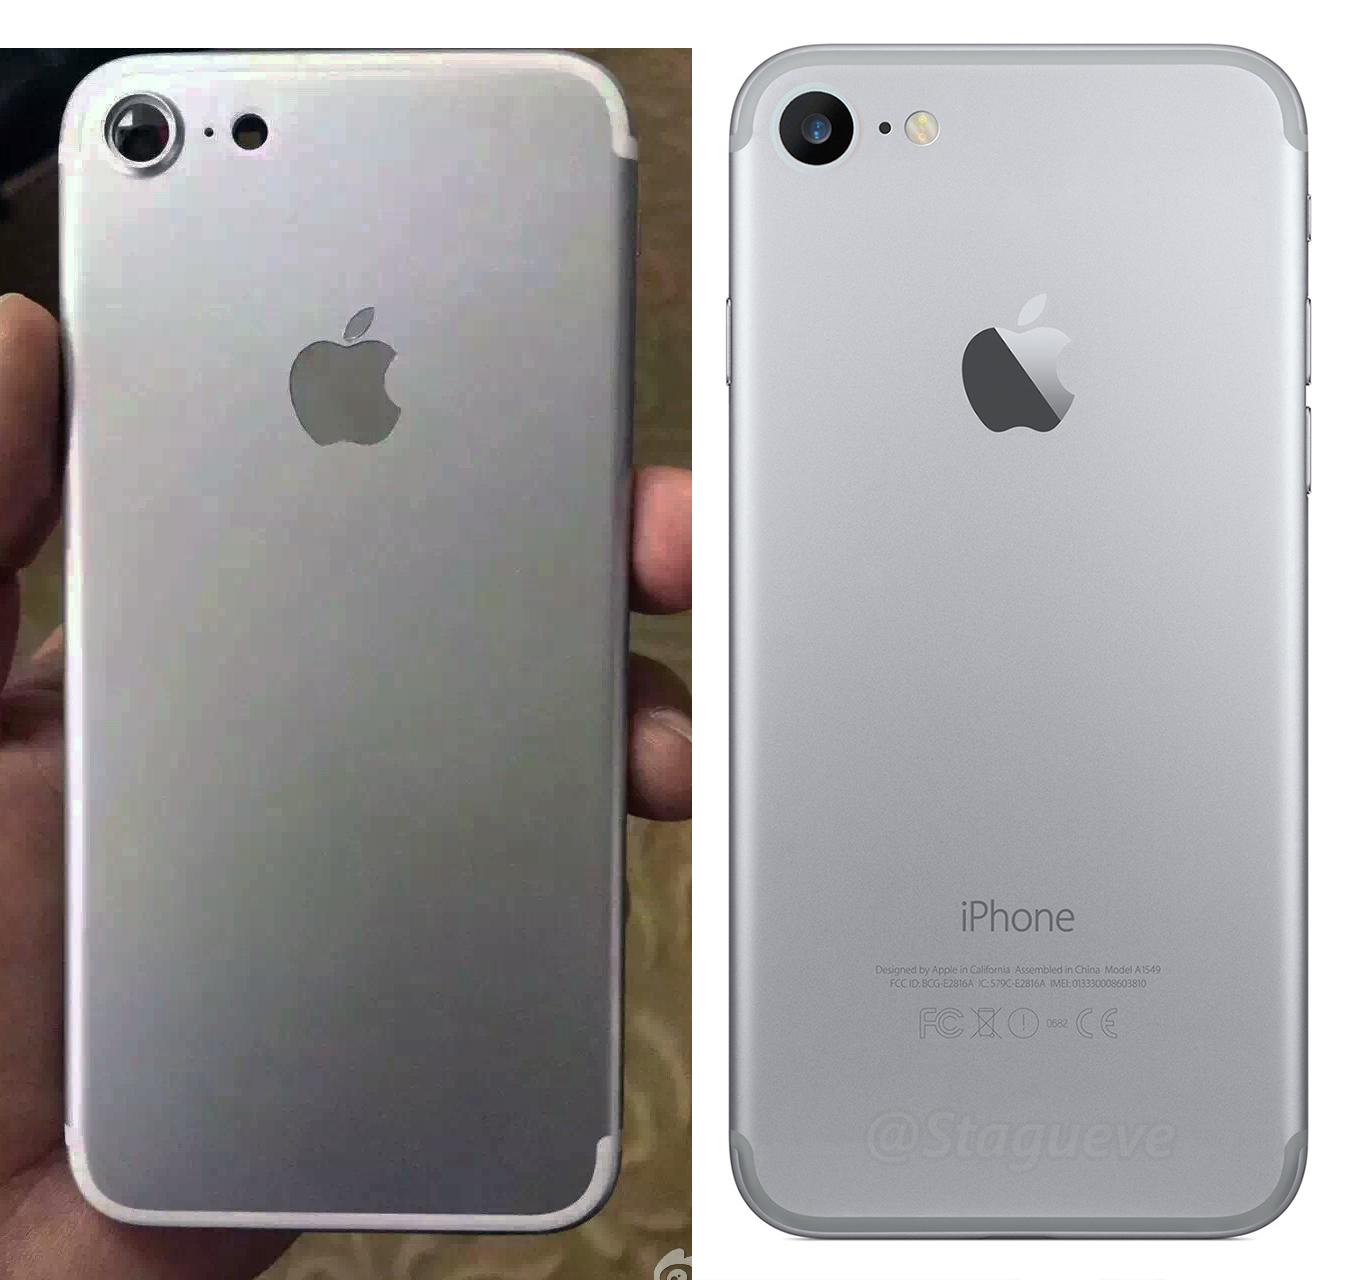 3711522_iPhone-7-Leak-vs-iPhone-7-Render